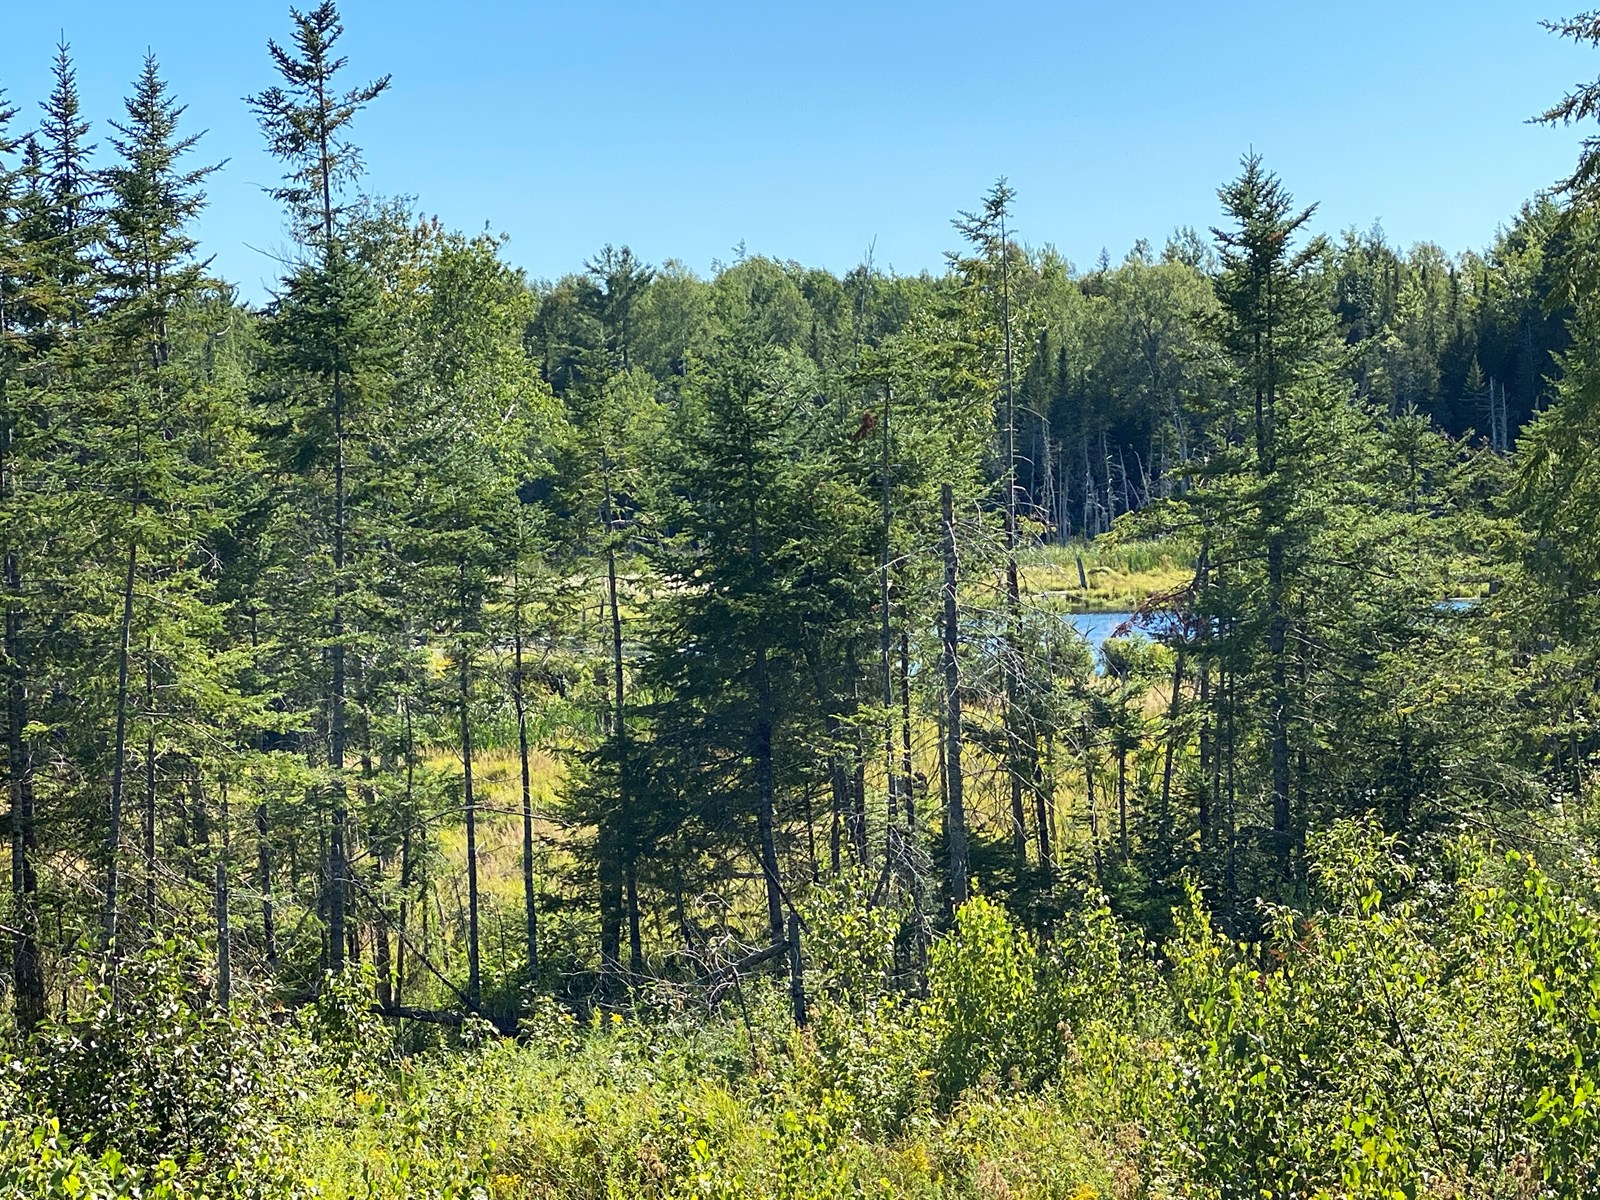 There is a Pond on this Off-Grid Land